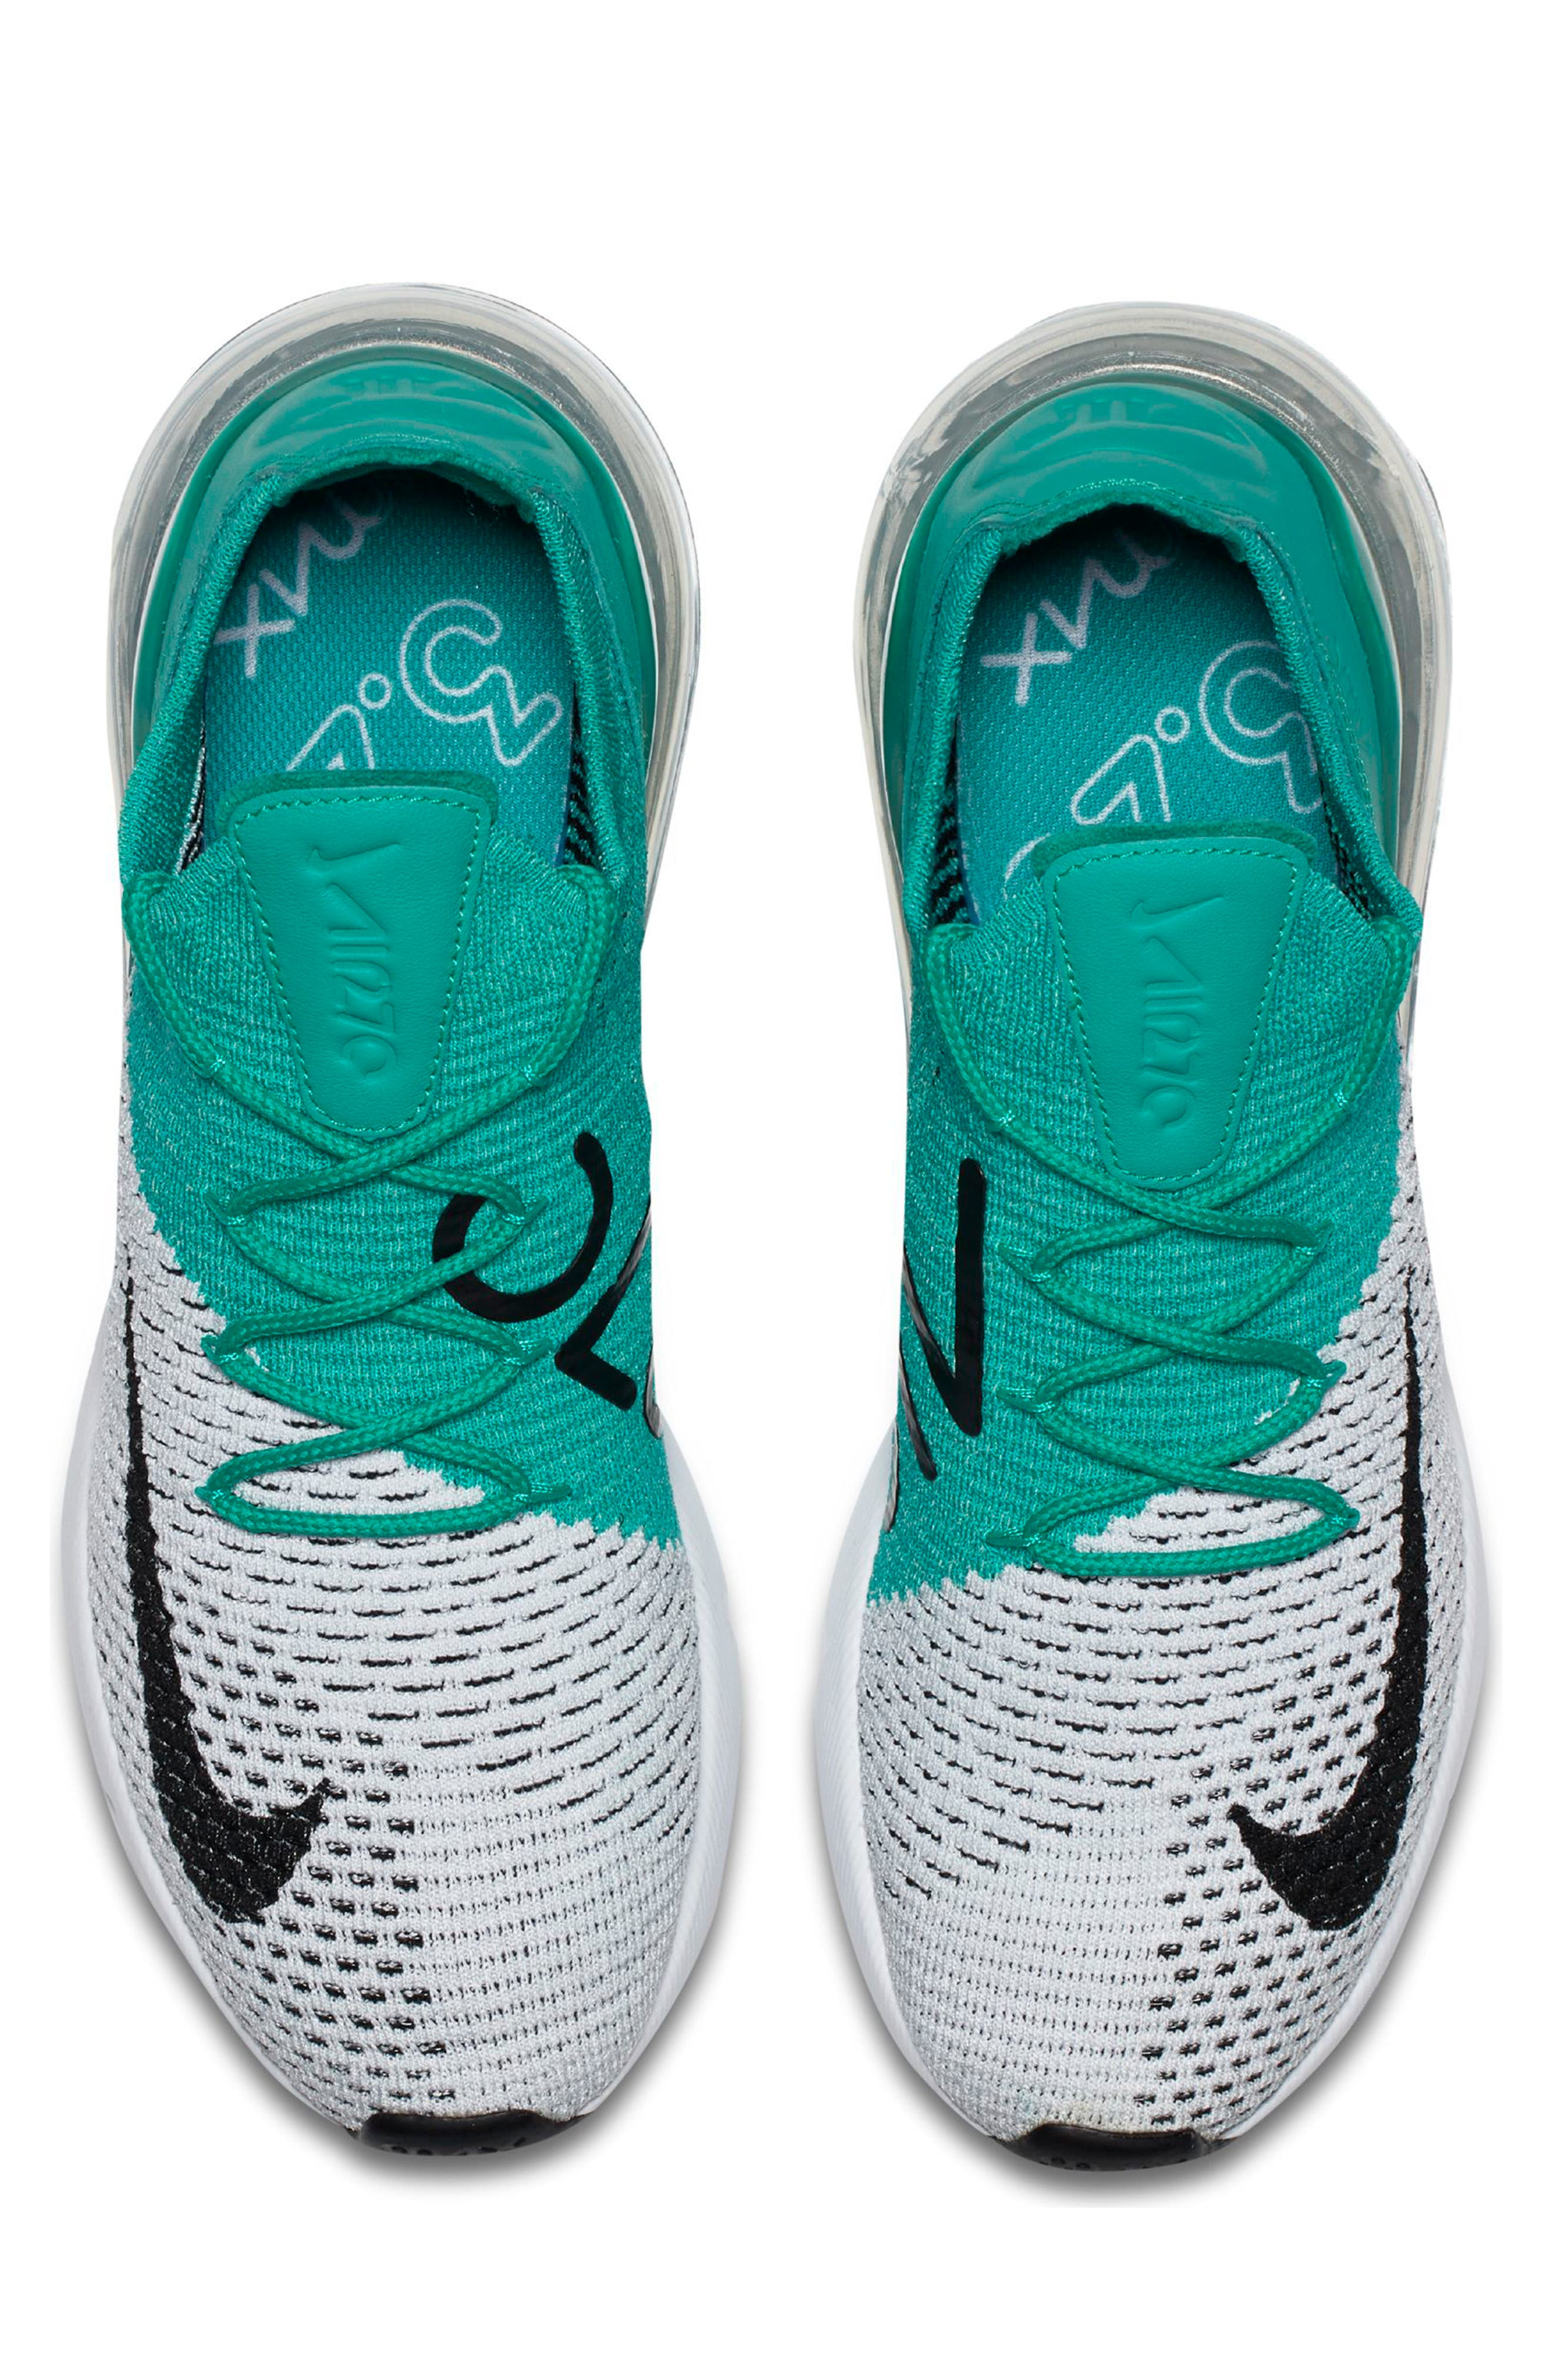 Air Max 270 Flyknit Sneaker,                             Alternate thumbnail 4, color,                             Emerald/ Black/ Pure Platinum